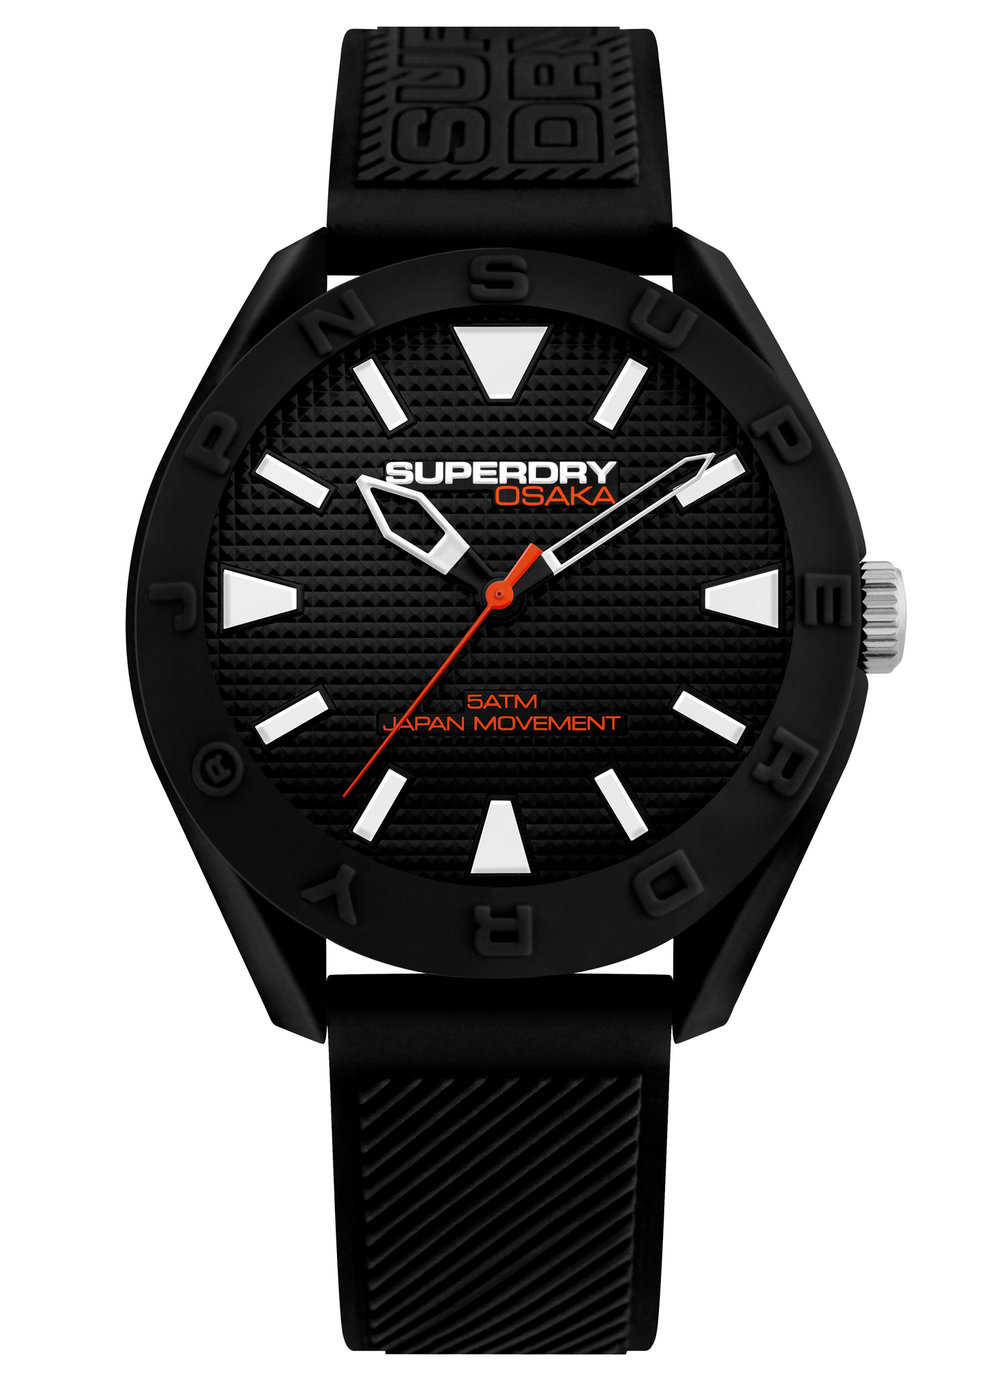 superdry_watches_SDSYG243B.jpg